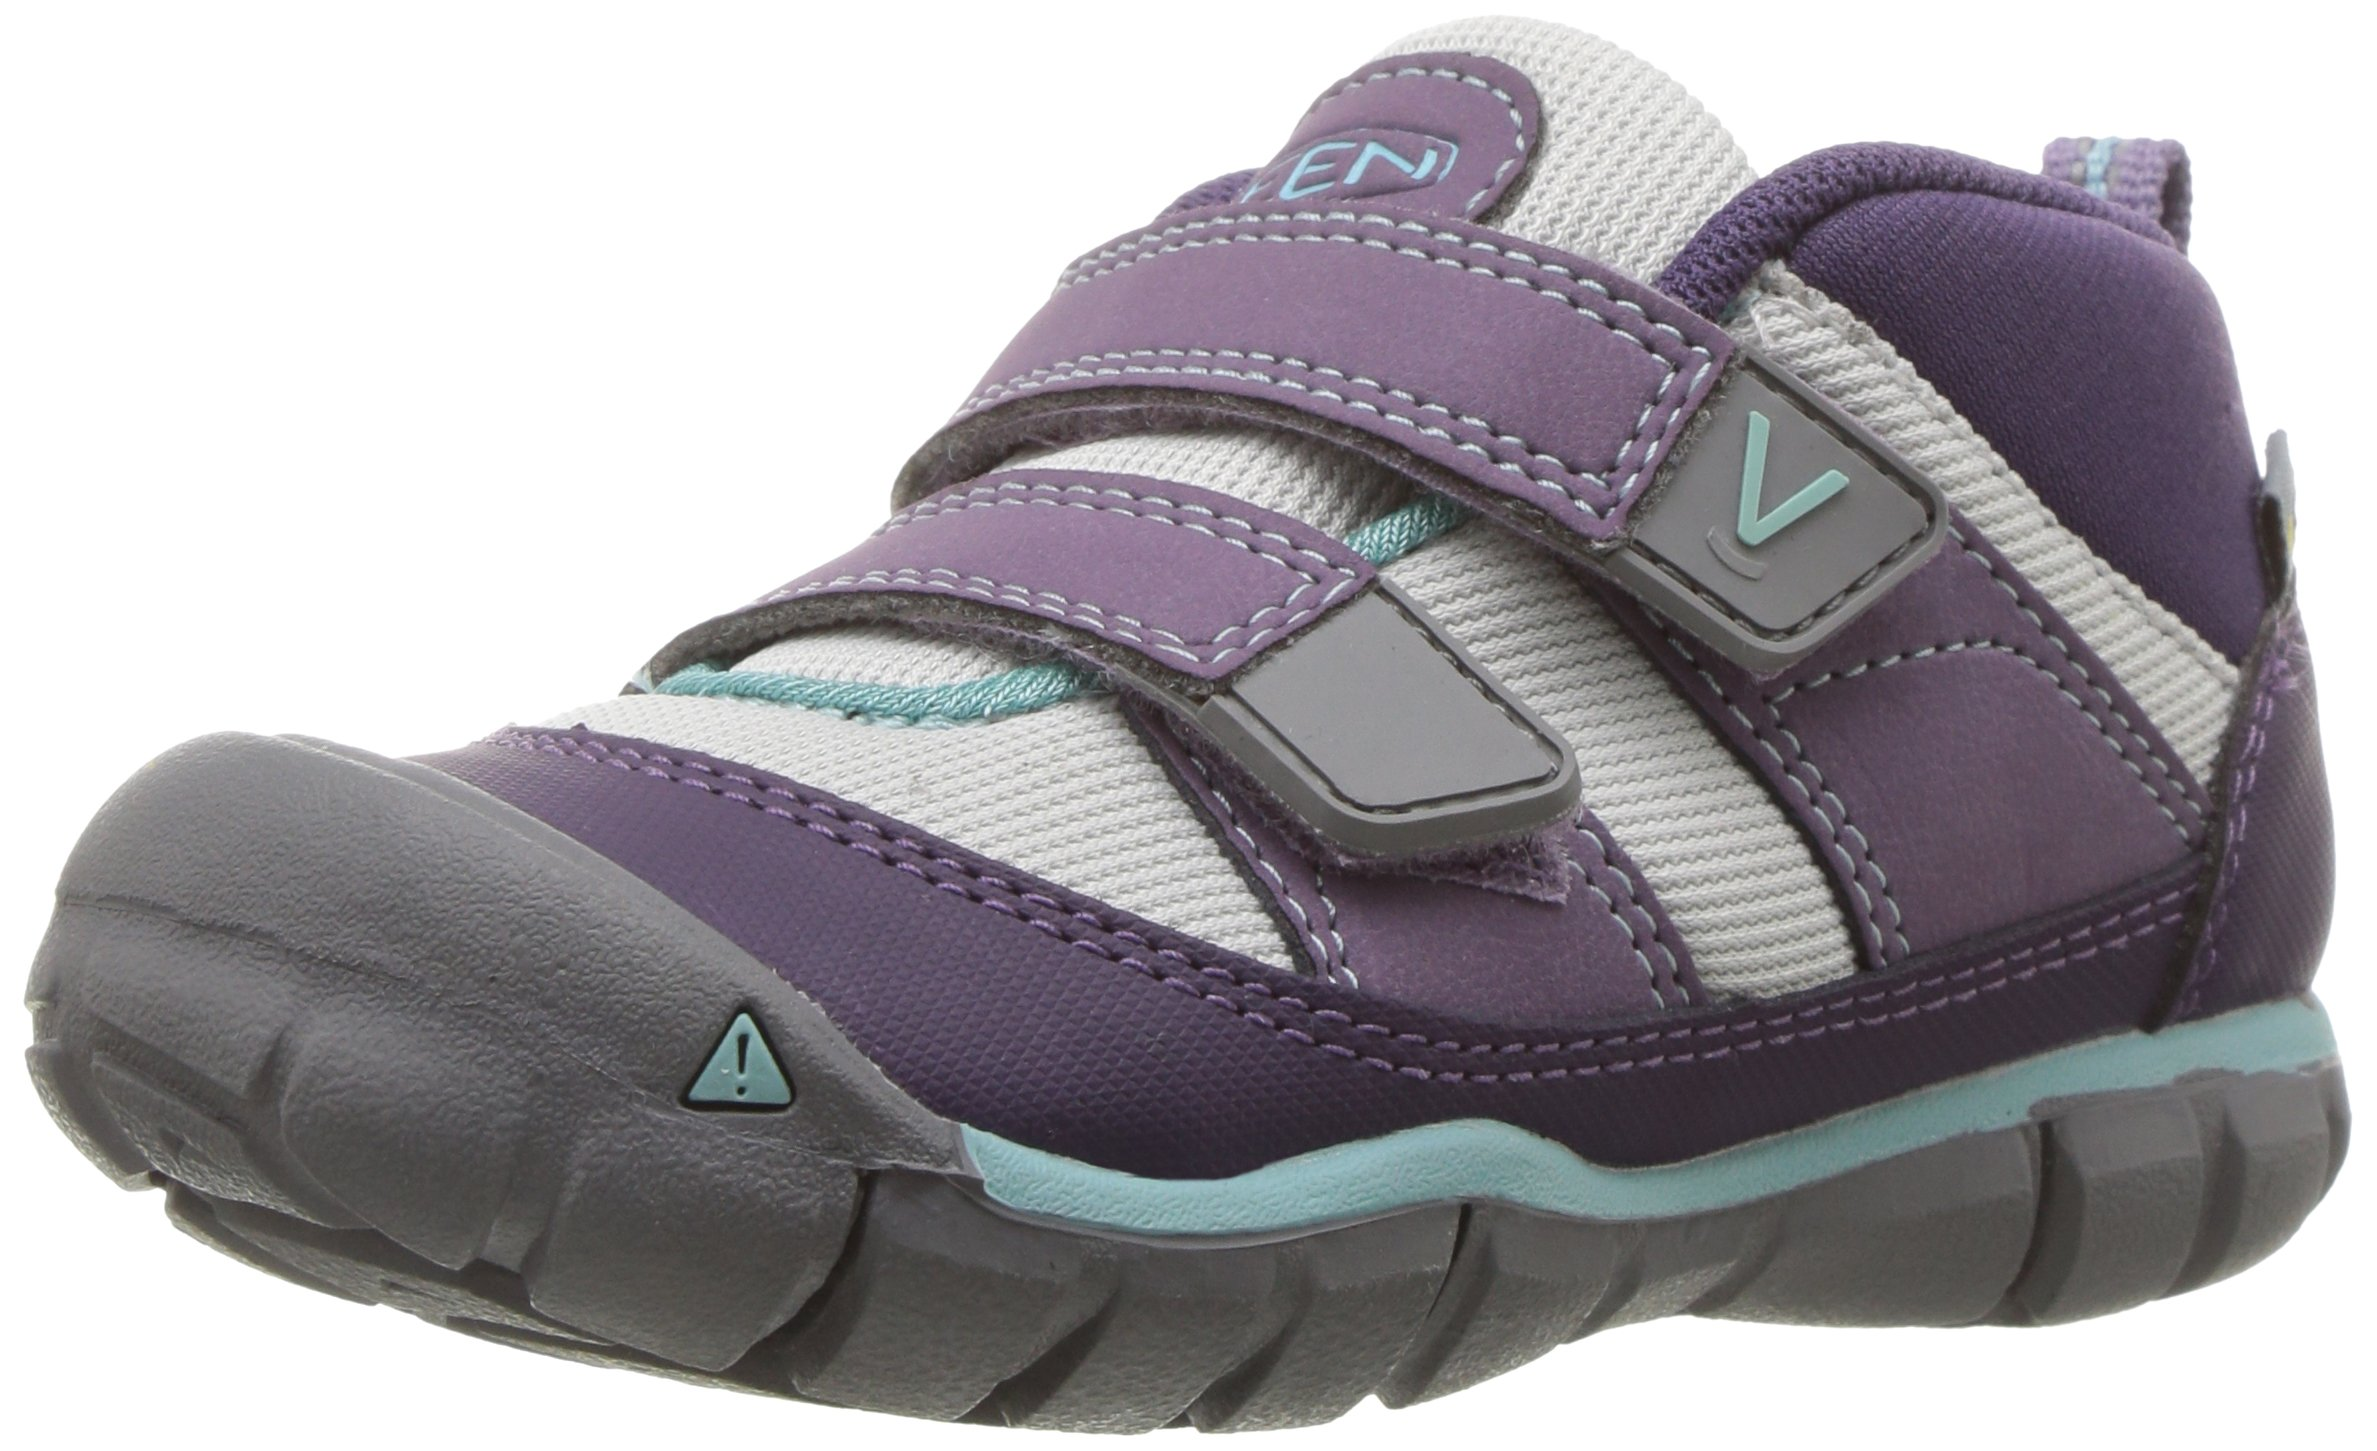 Best Rated in Girls Hiking Shoes & Helpful Customer Reviews